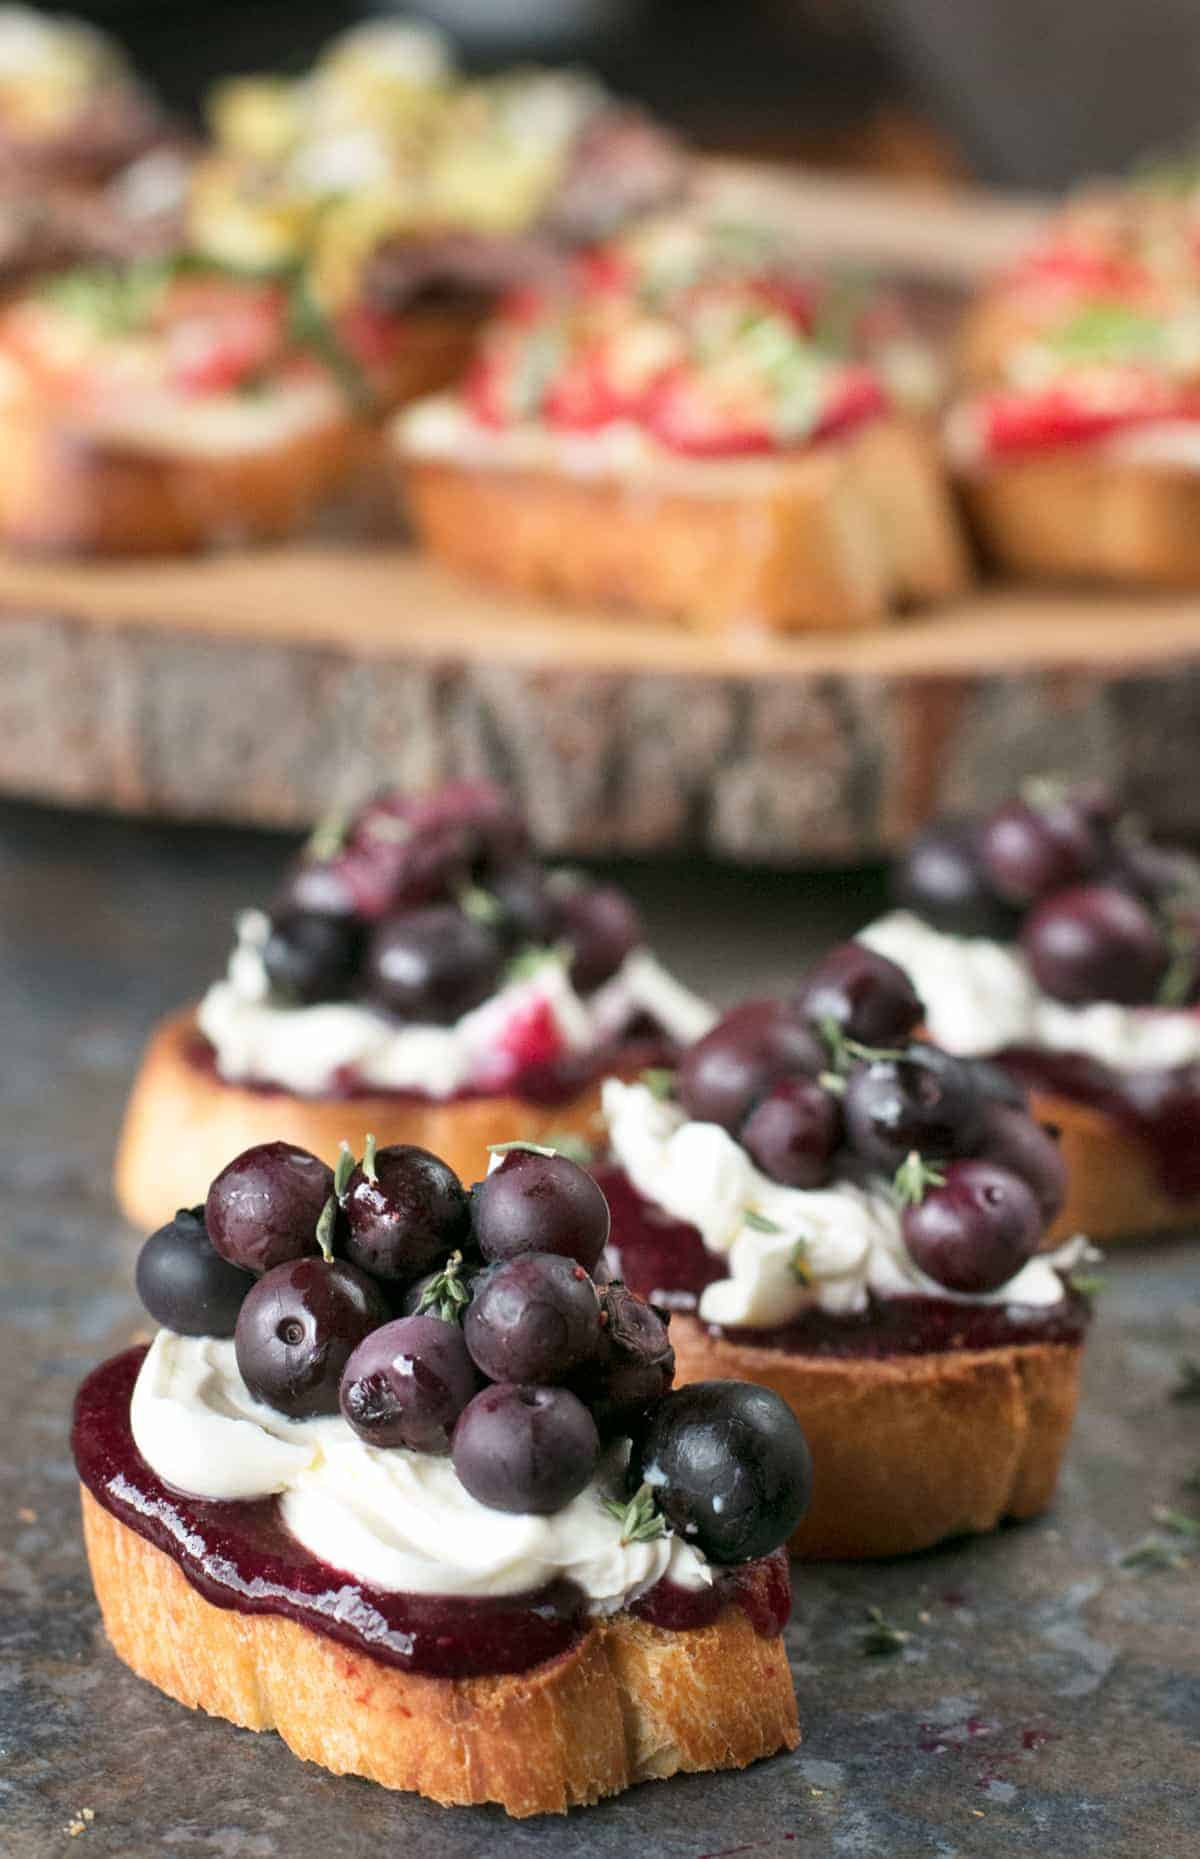 Several Blueberry Thyme Mascarpone Crostini sit in front of a wooden round that holds more summertime crostini